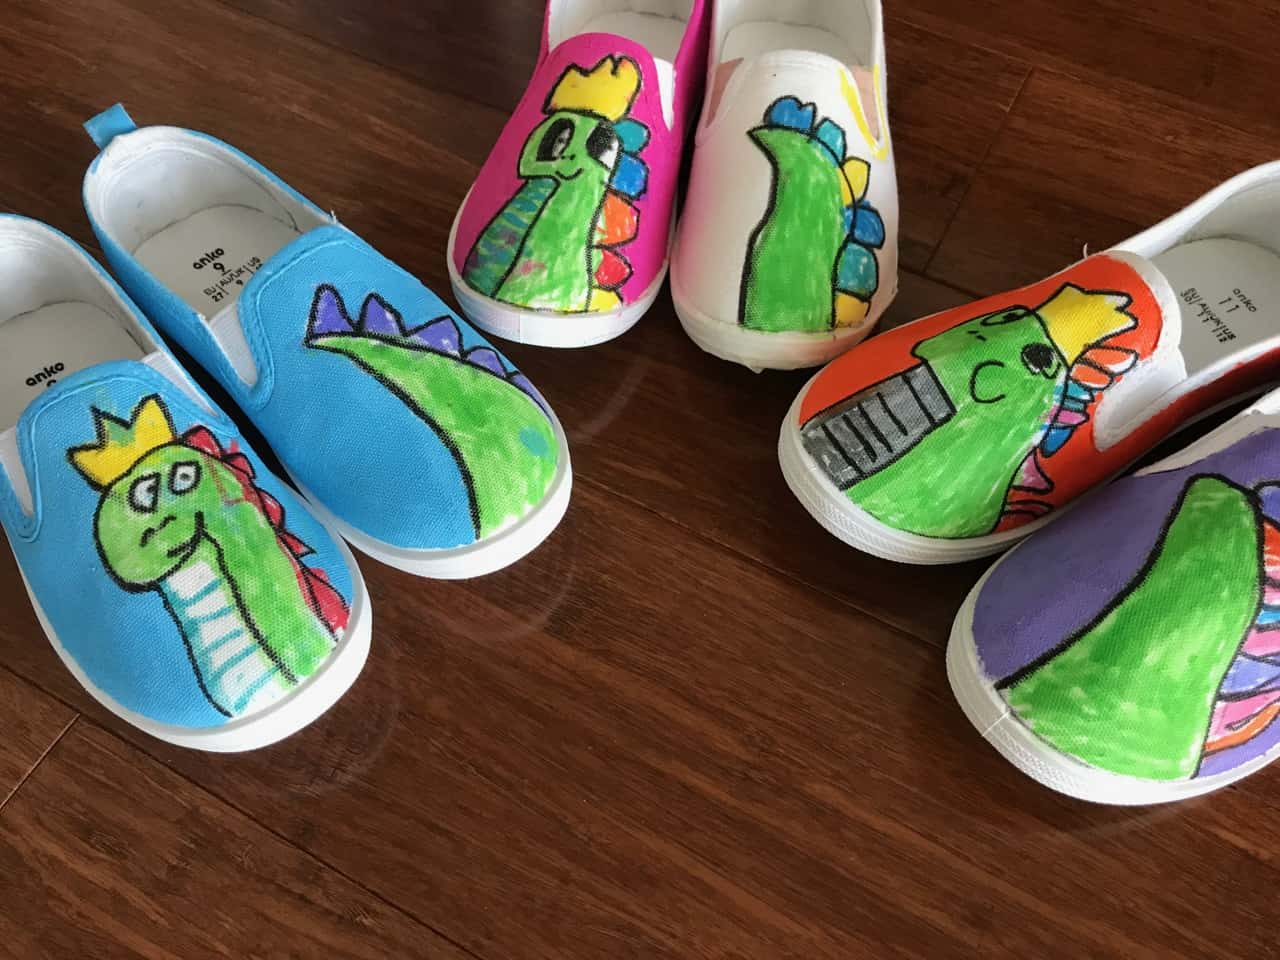 Les Petits Painters preschool arts and crafts, sneaker painting for kids, fabric paint and fabric markers, 3-5 year old kids and sneaker ideas, art school for kids